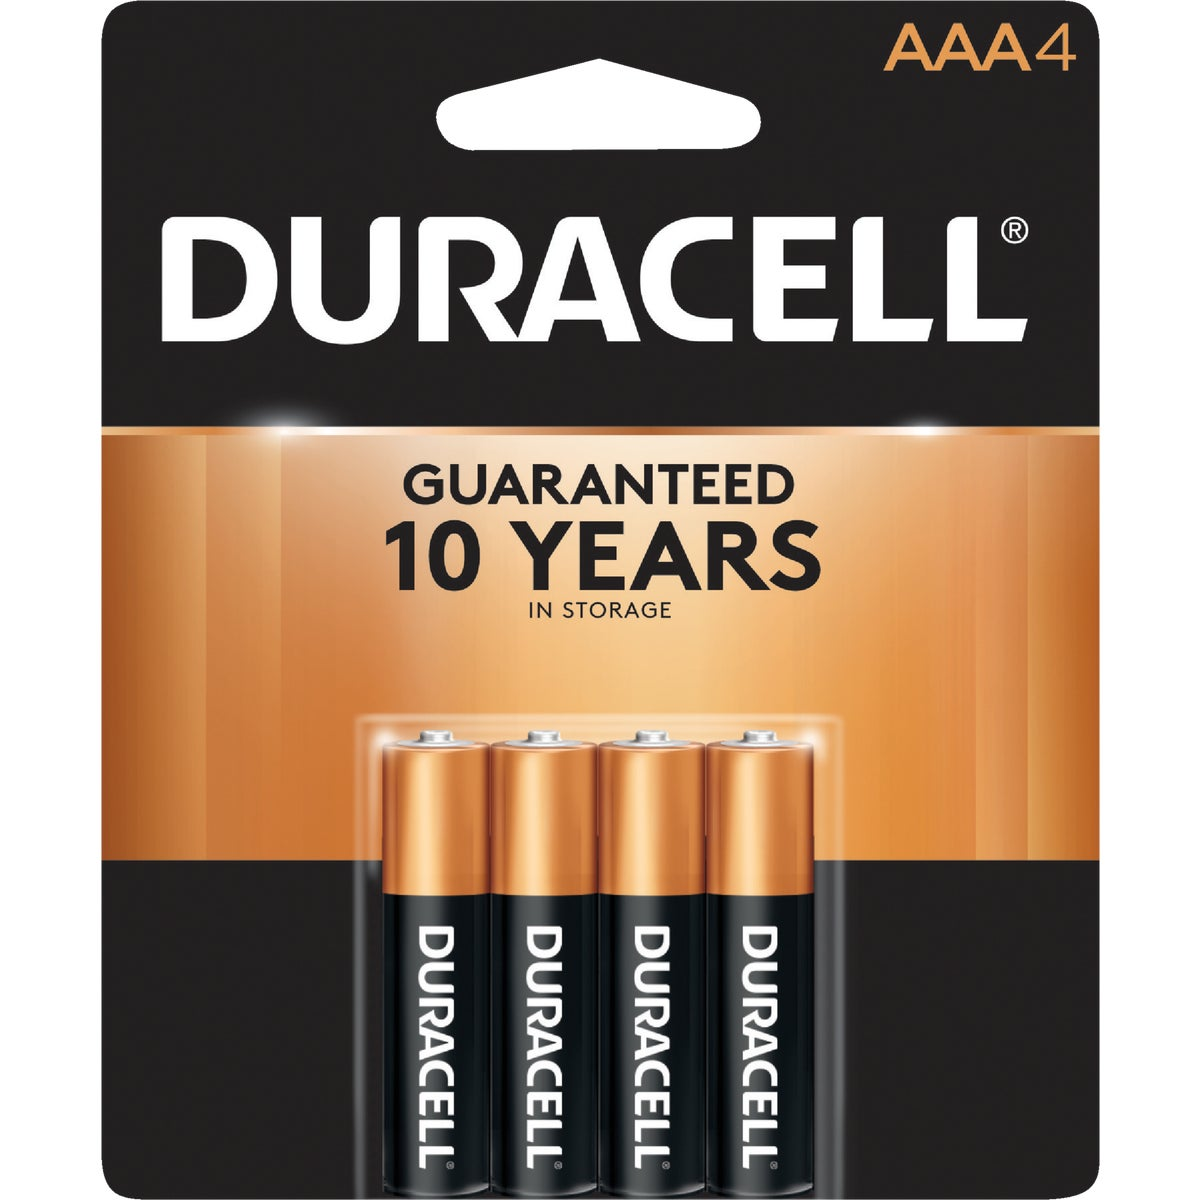 4PK AAA ALKA BATTERY - 04061 by P & G  Duracell